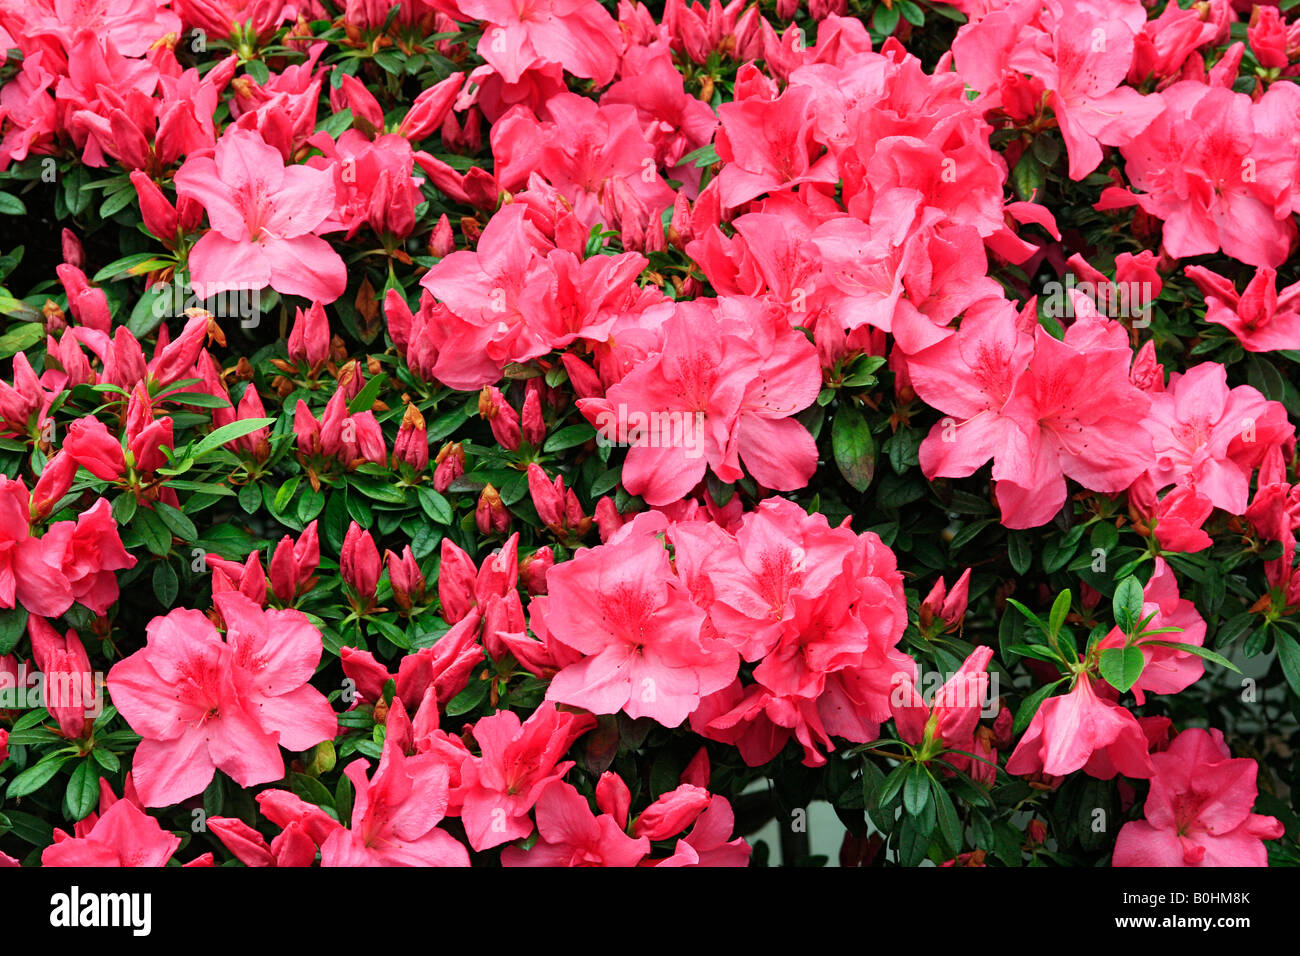 Azalea (Rhododendron), full red blossoms, luxuriously flowering - Stock Image